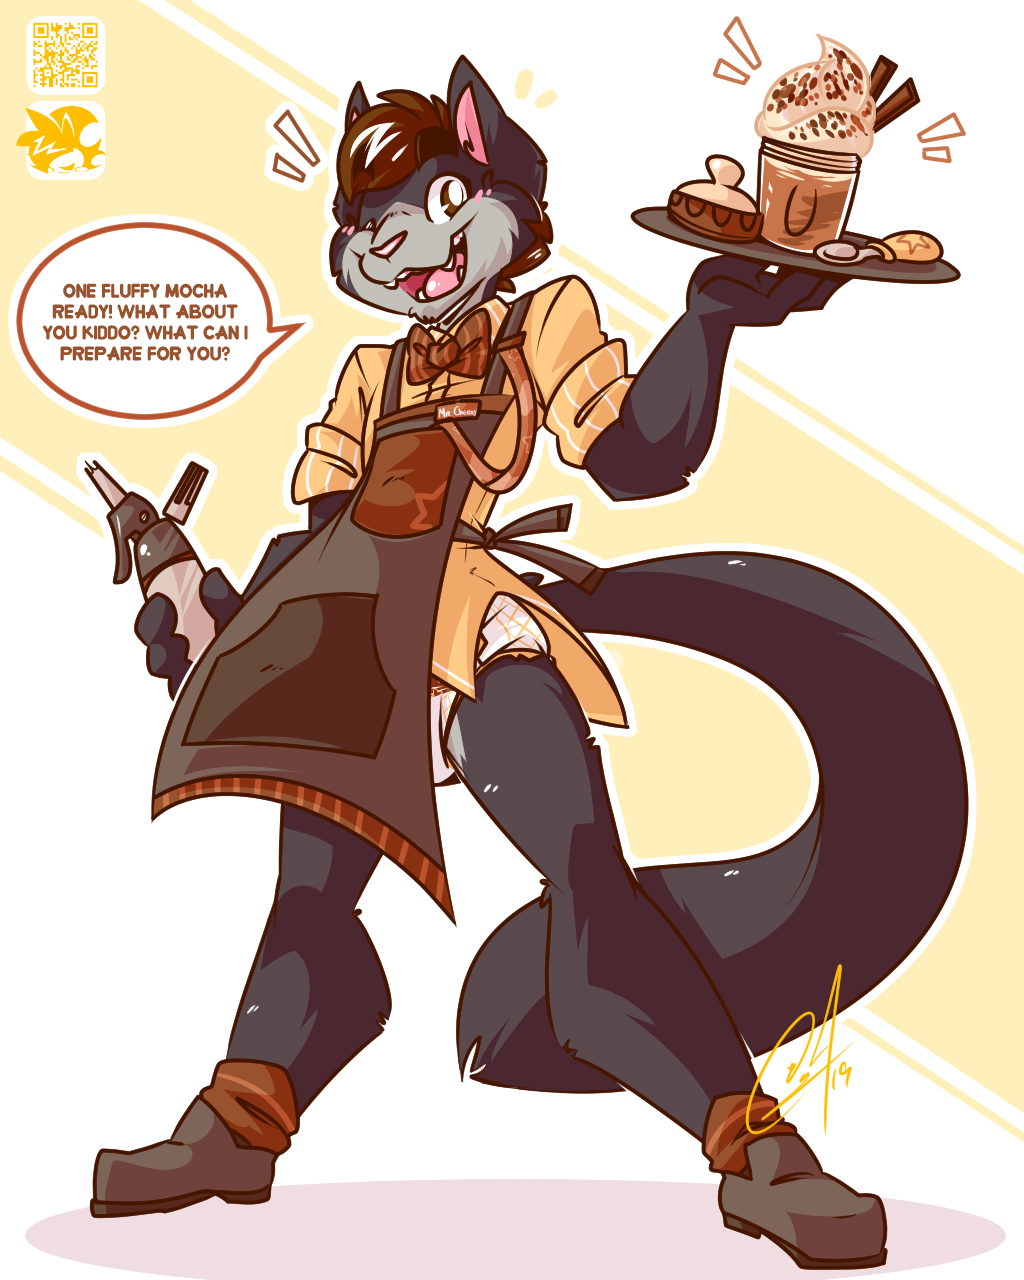 [⚡] - BARISTA AT YOUR SERVICE